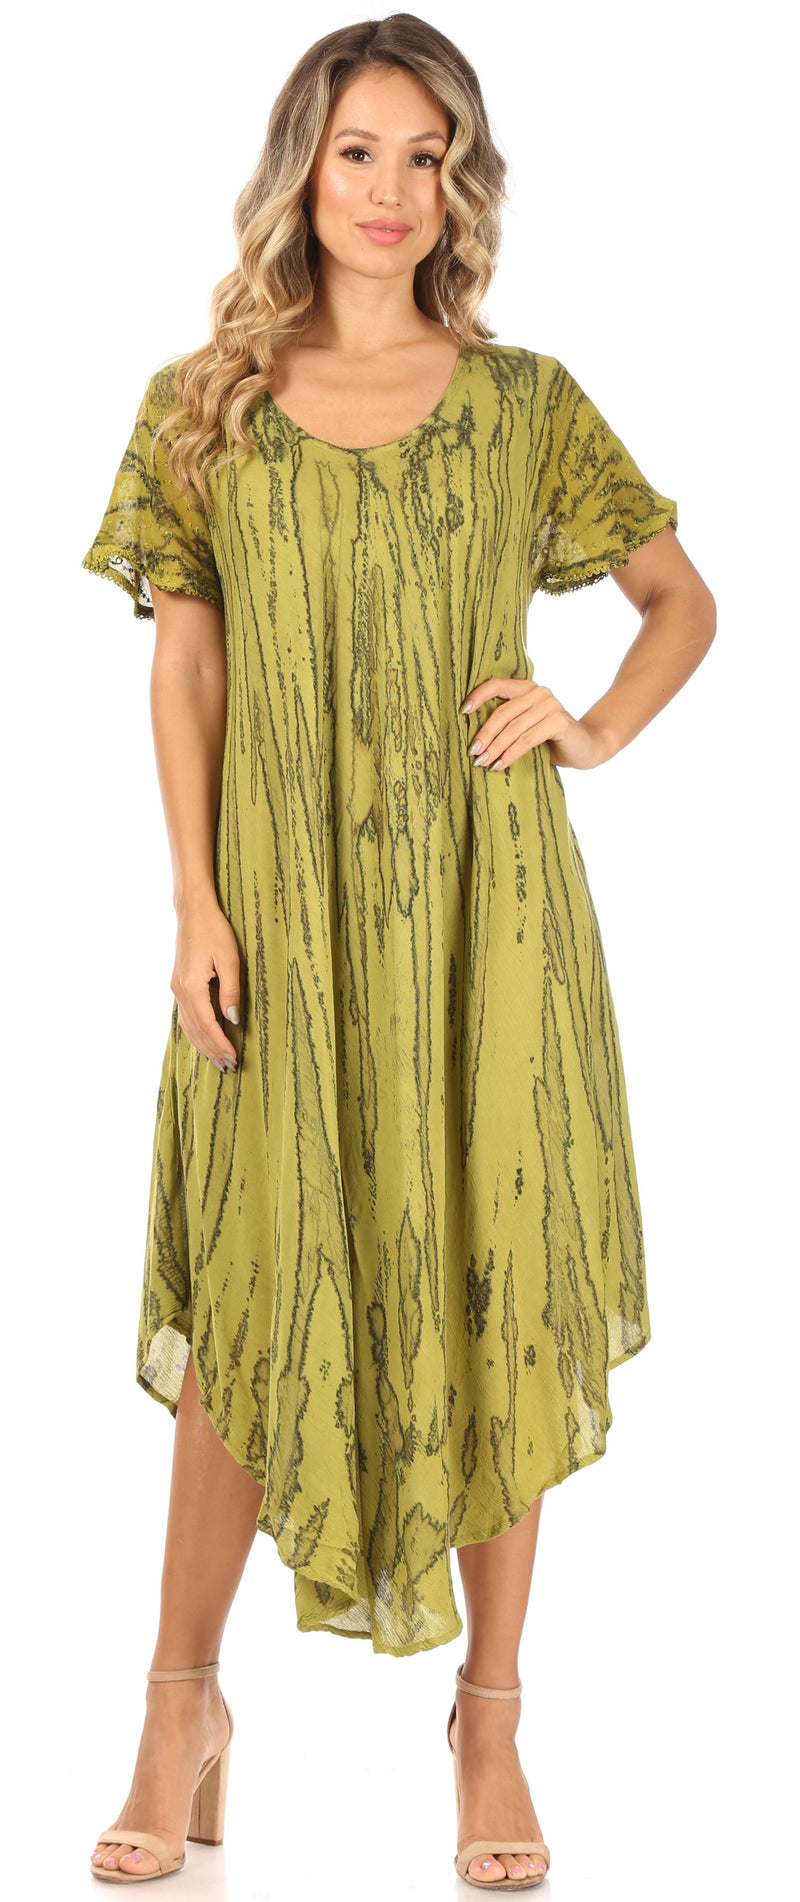 Sakkas Faye Cap Sleeved Cotton Caftan Cover Up Dress